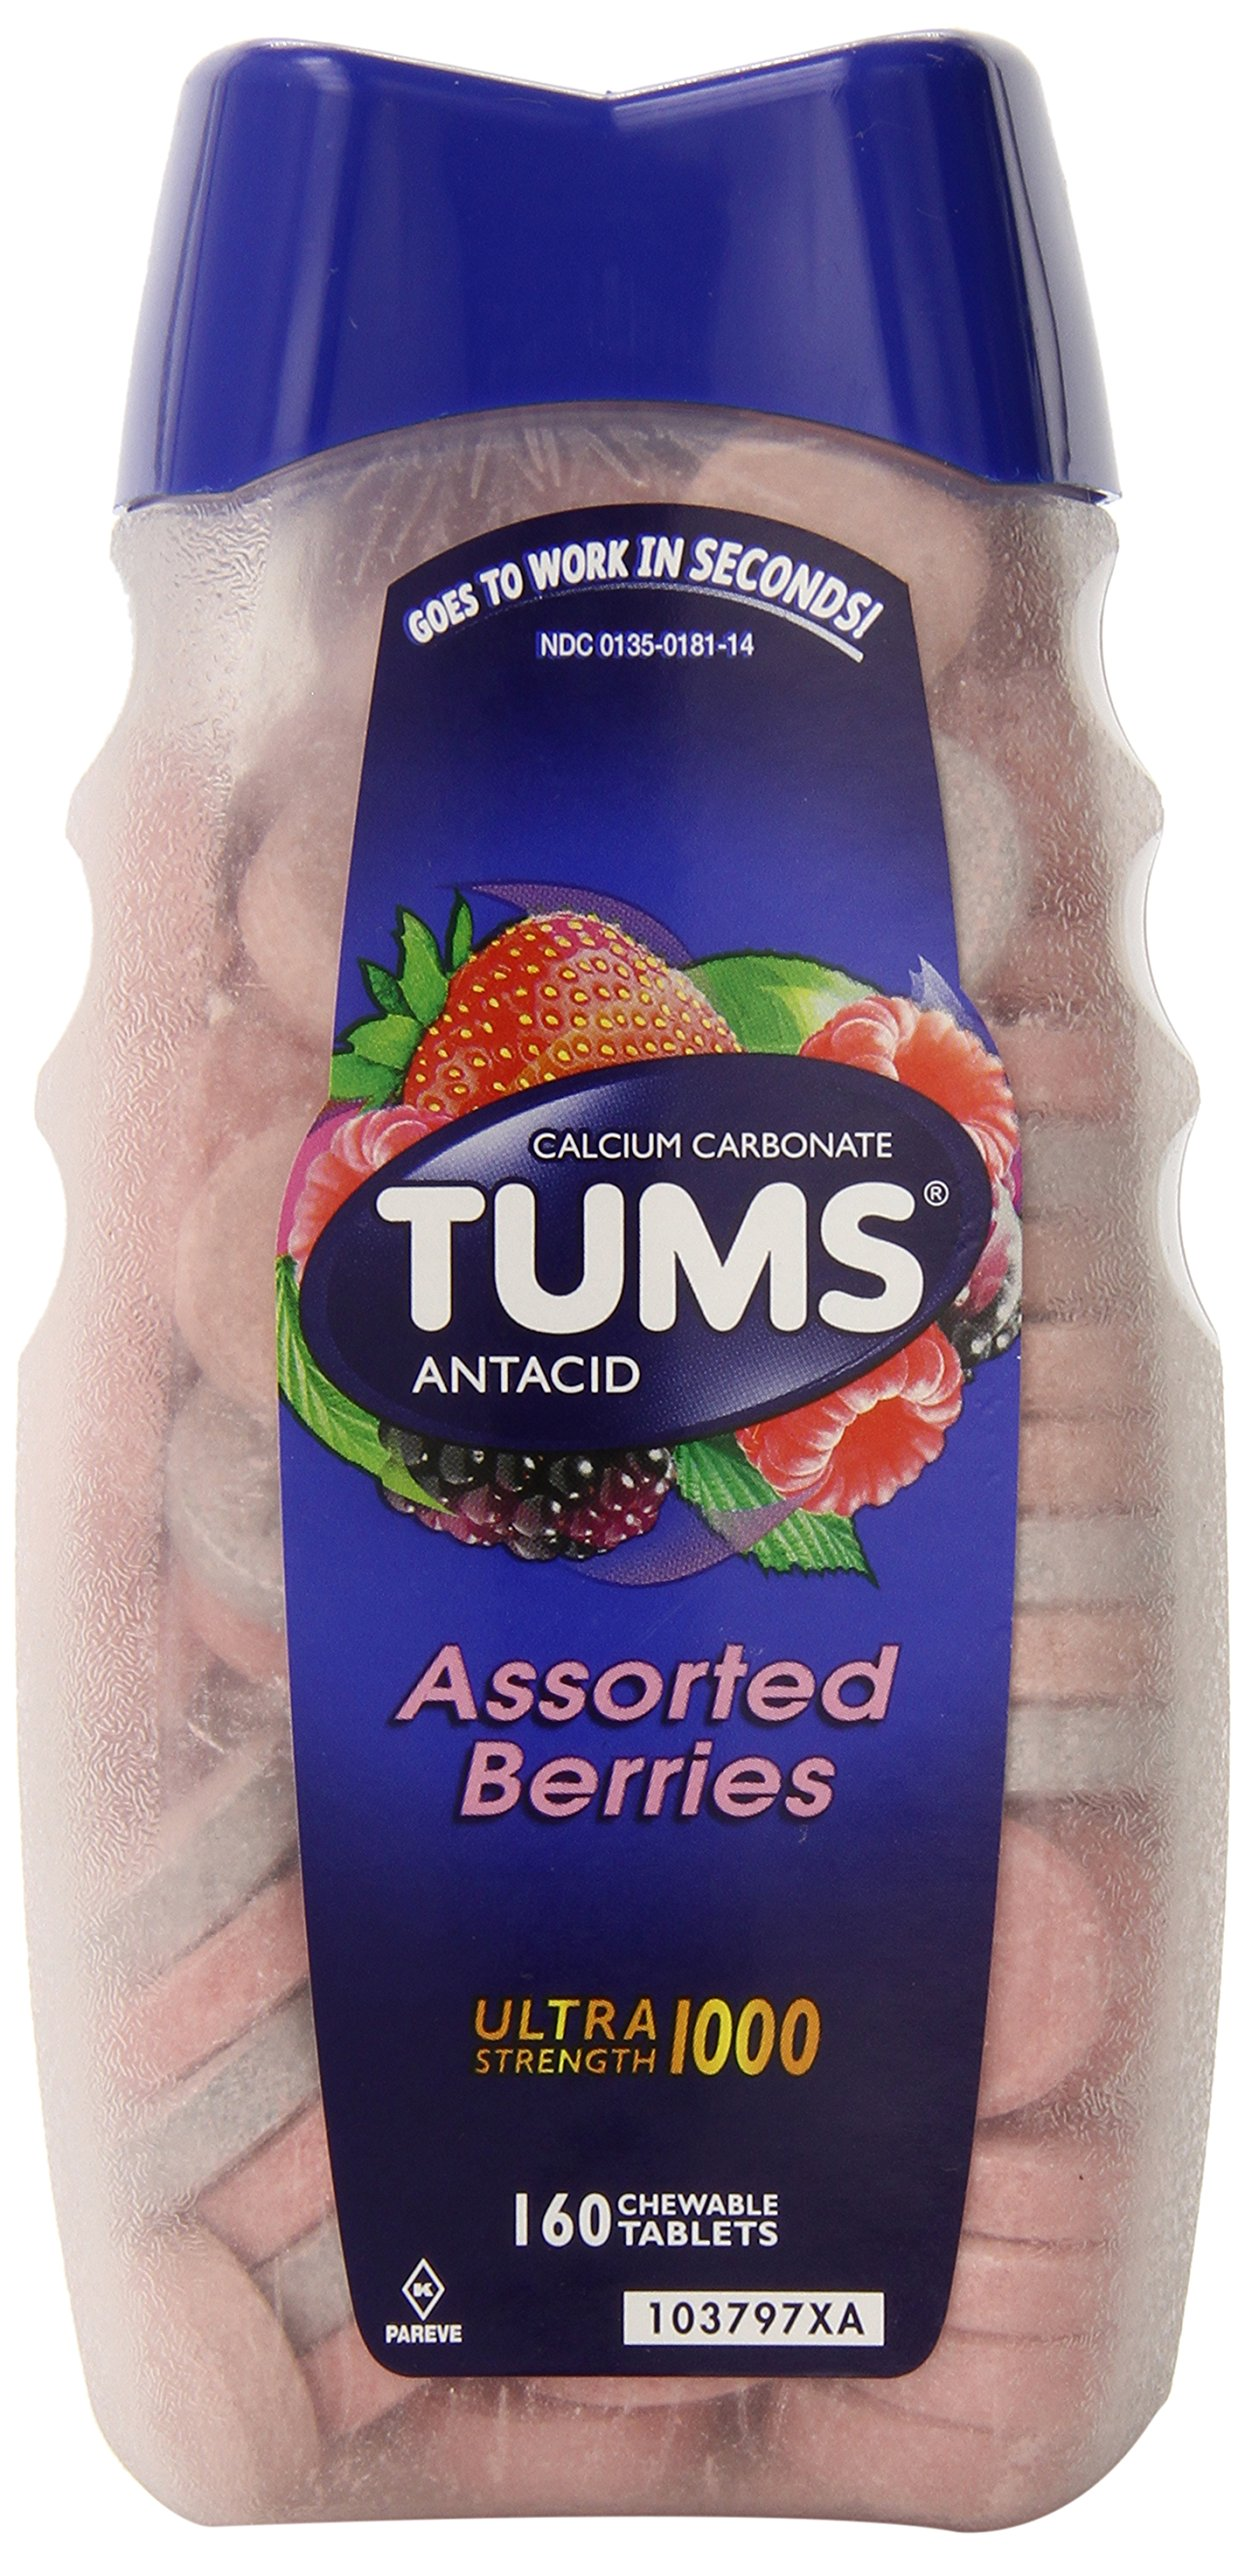 Tums Ultra Strength 1000 ,Antacid Chewable Tablets, Assorted Berries, 160 Count (Pack of 24) by TUMS